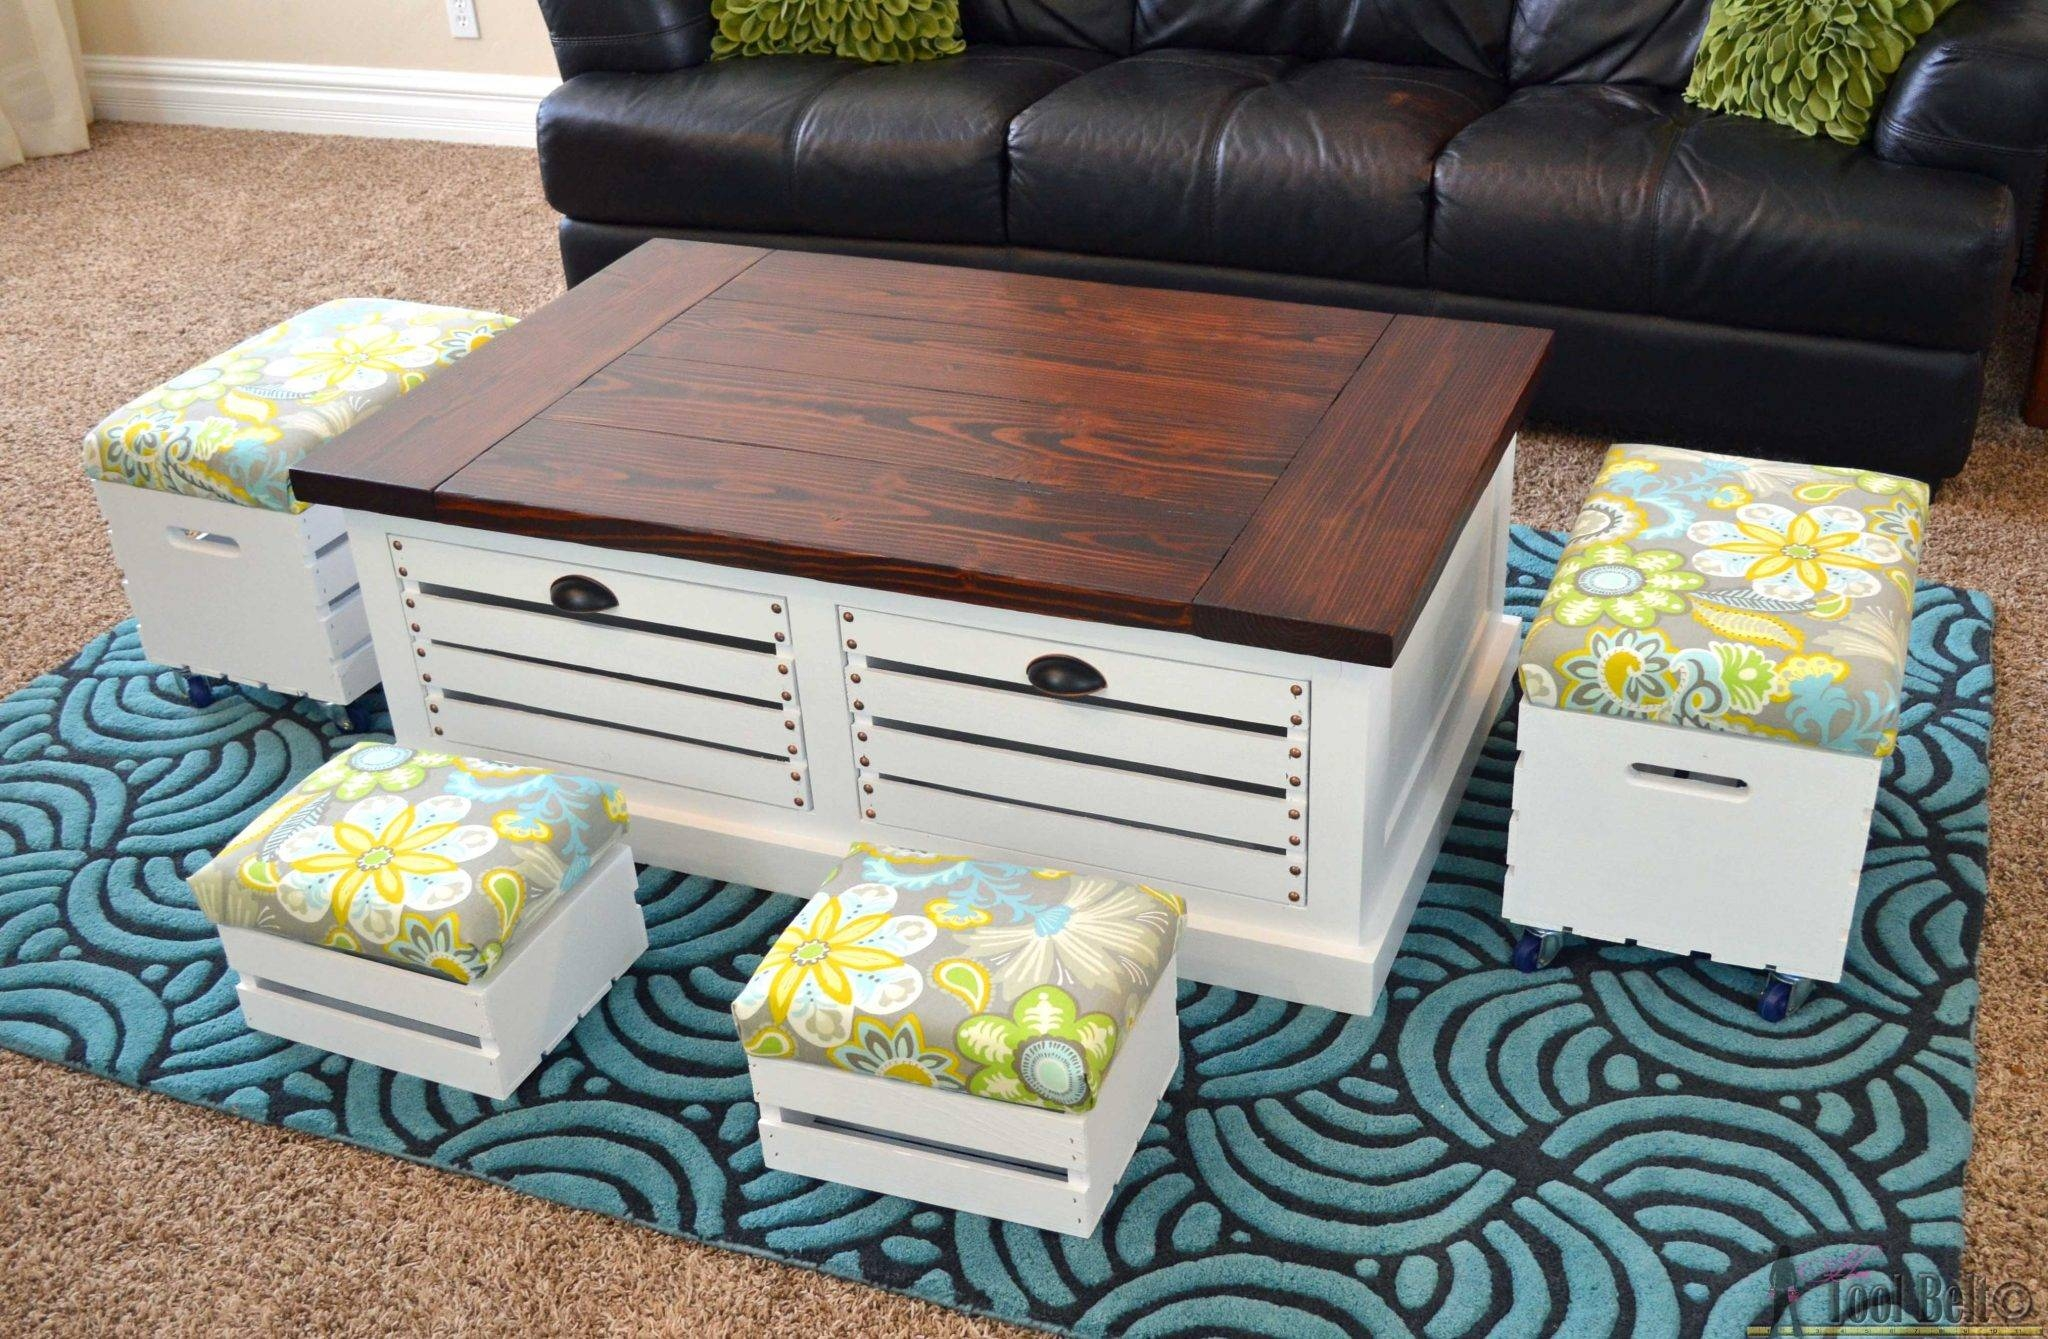 Crate Storage Coffee Table And Stools – Her Tool Belt In Coffee Table With Stools (View 11 of 30)